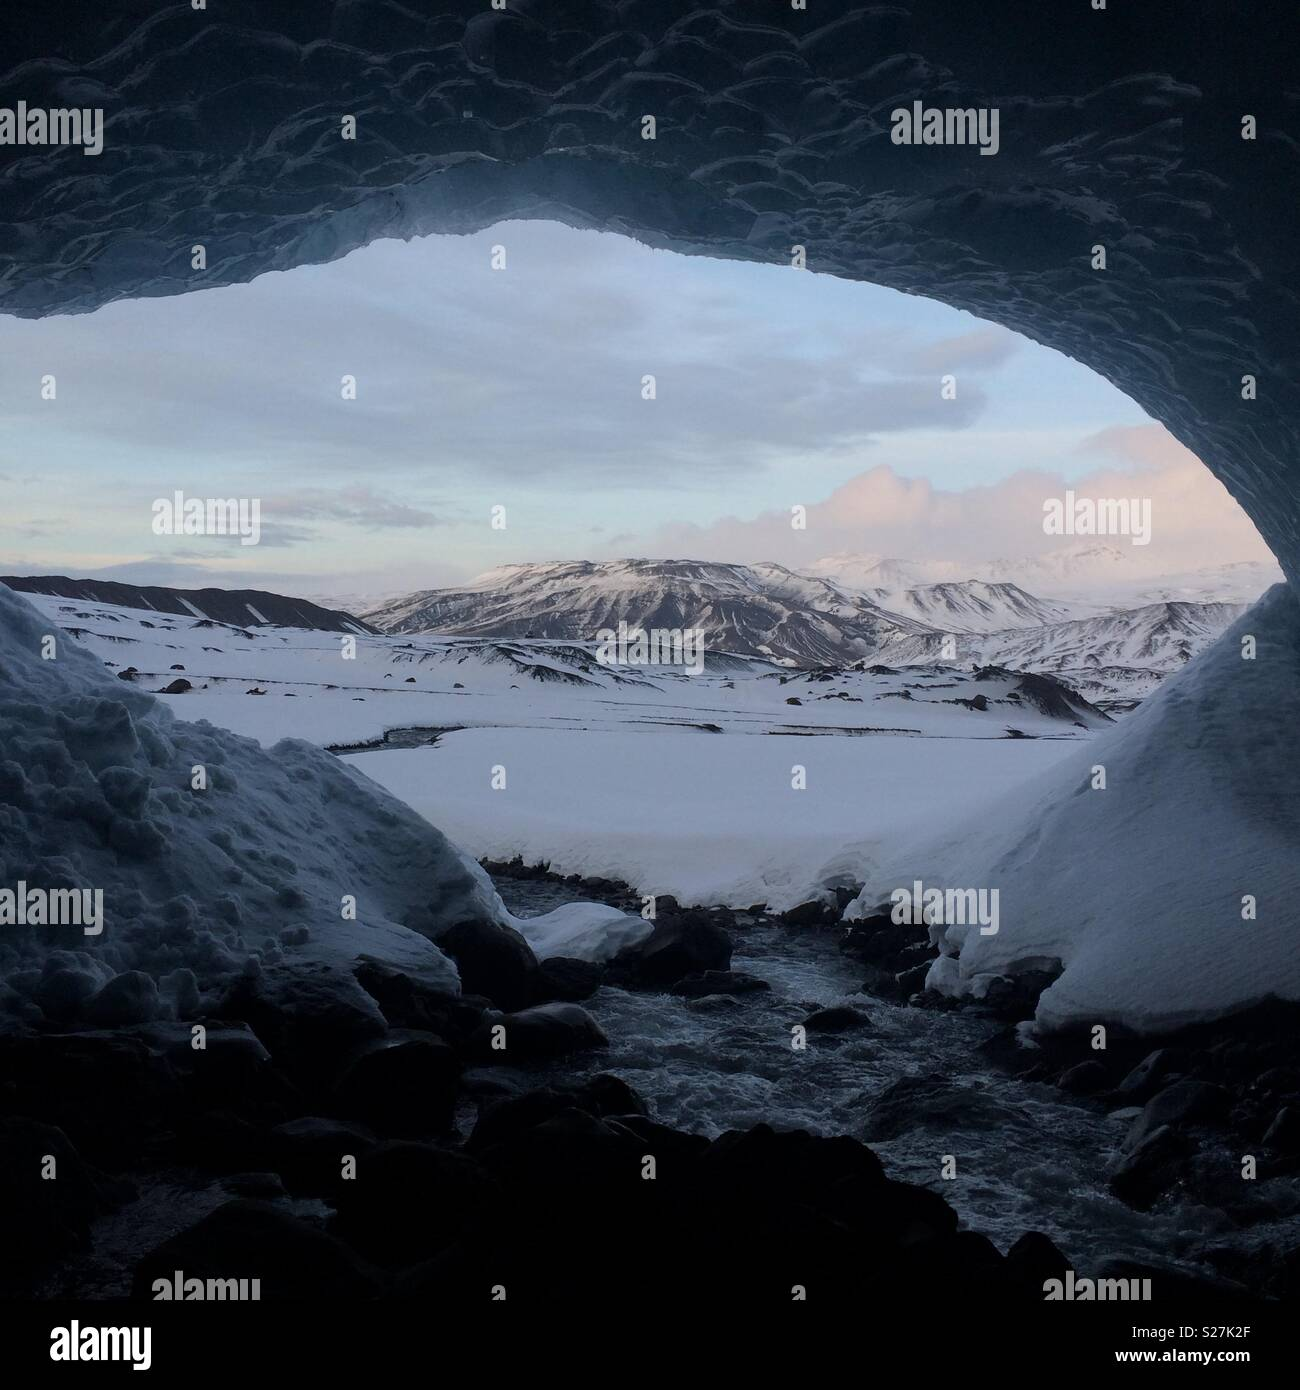 View from inside an ice cave in Iceland - Stock Image